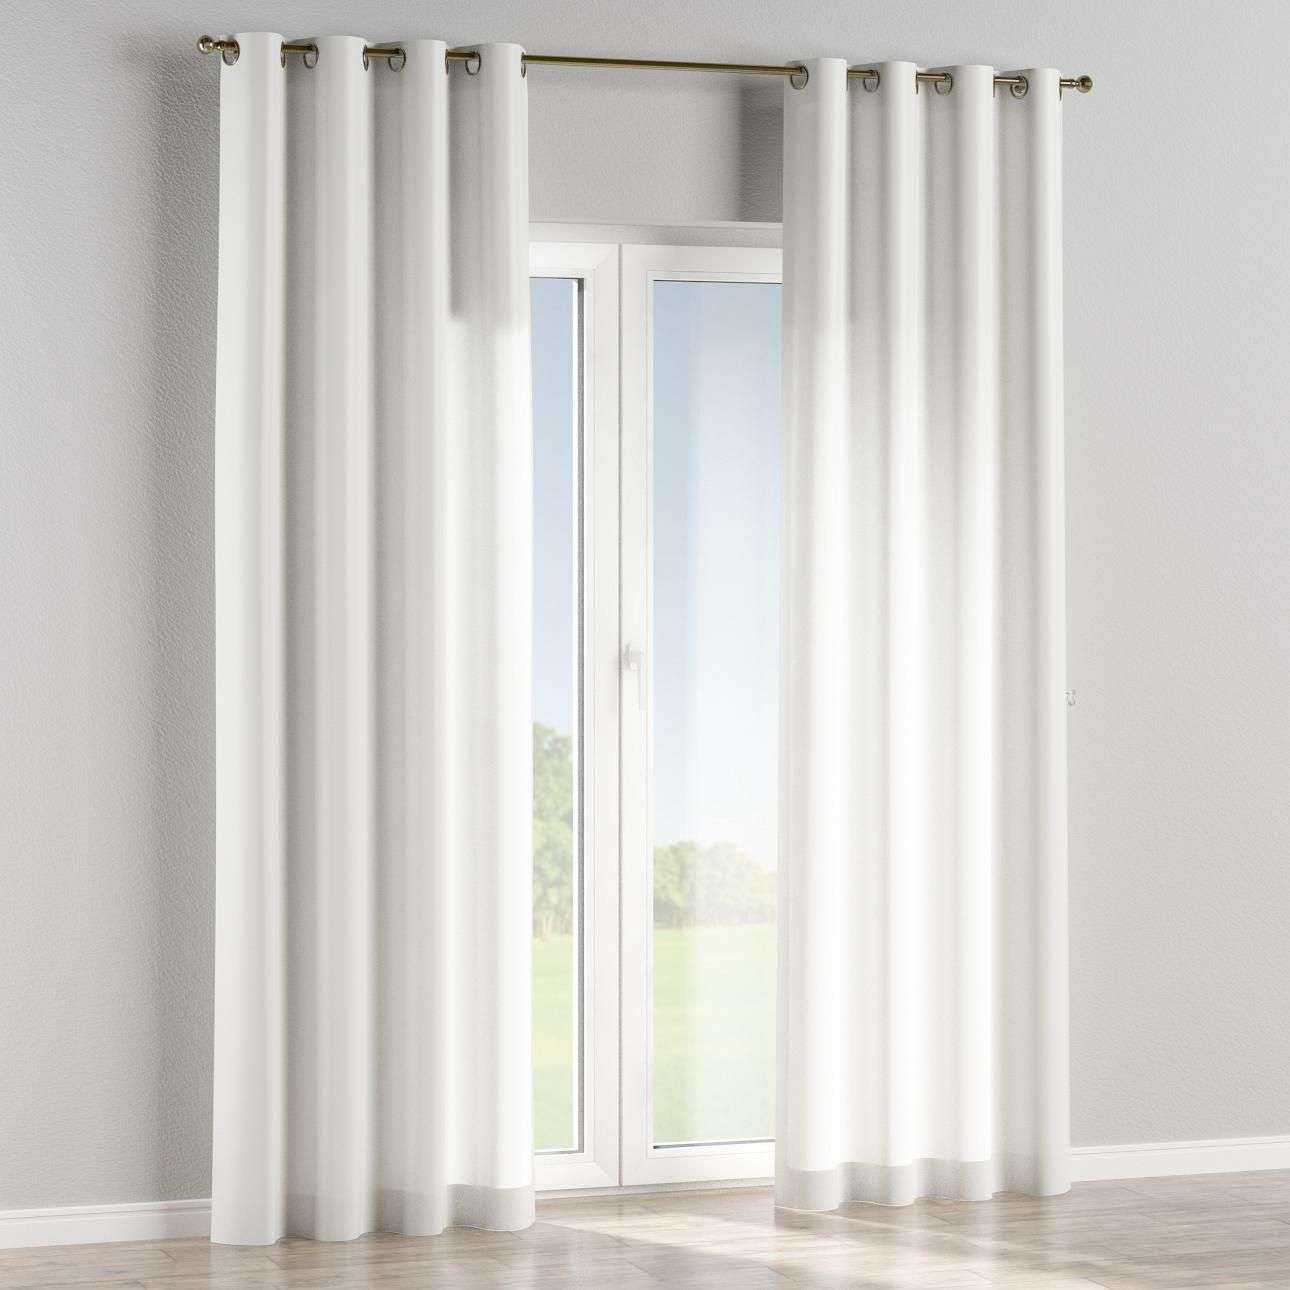 Eyelet curtains in collection SALE, fabric: 137-56